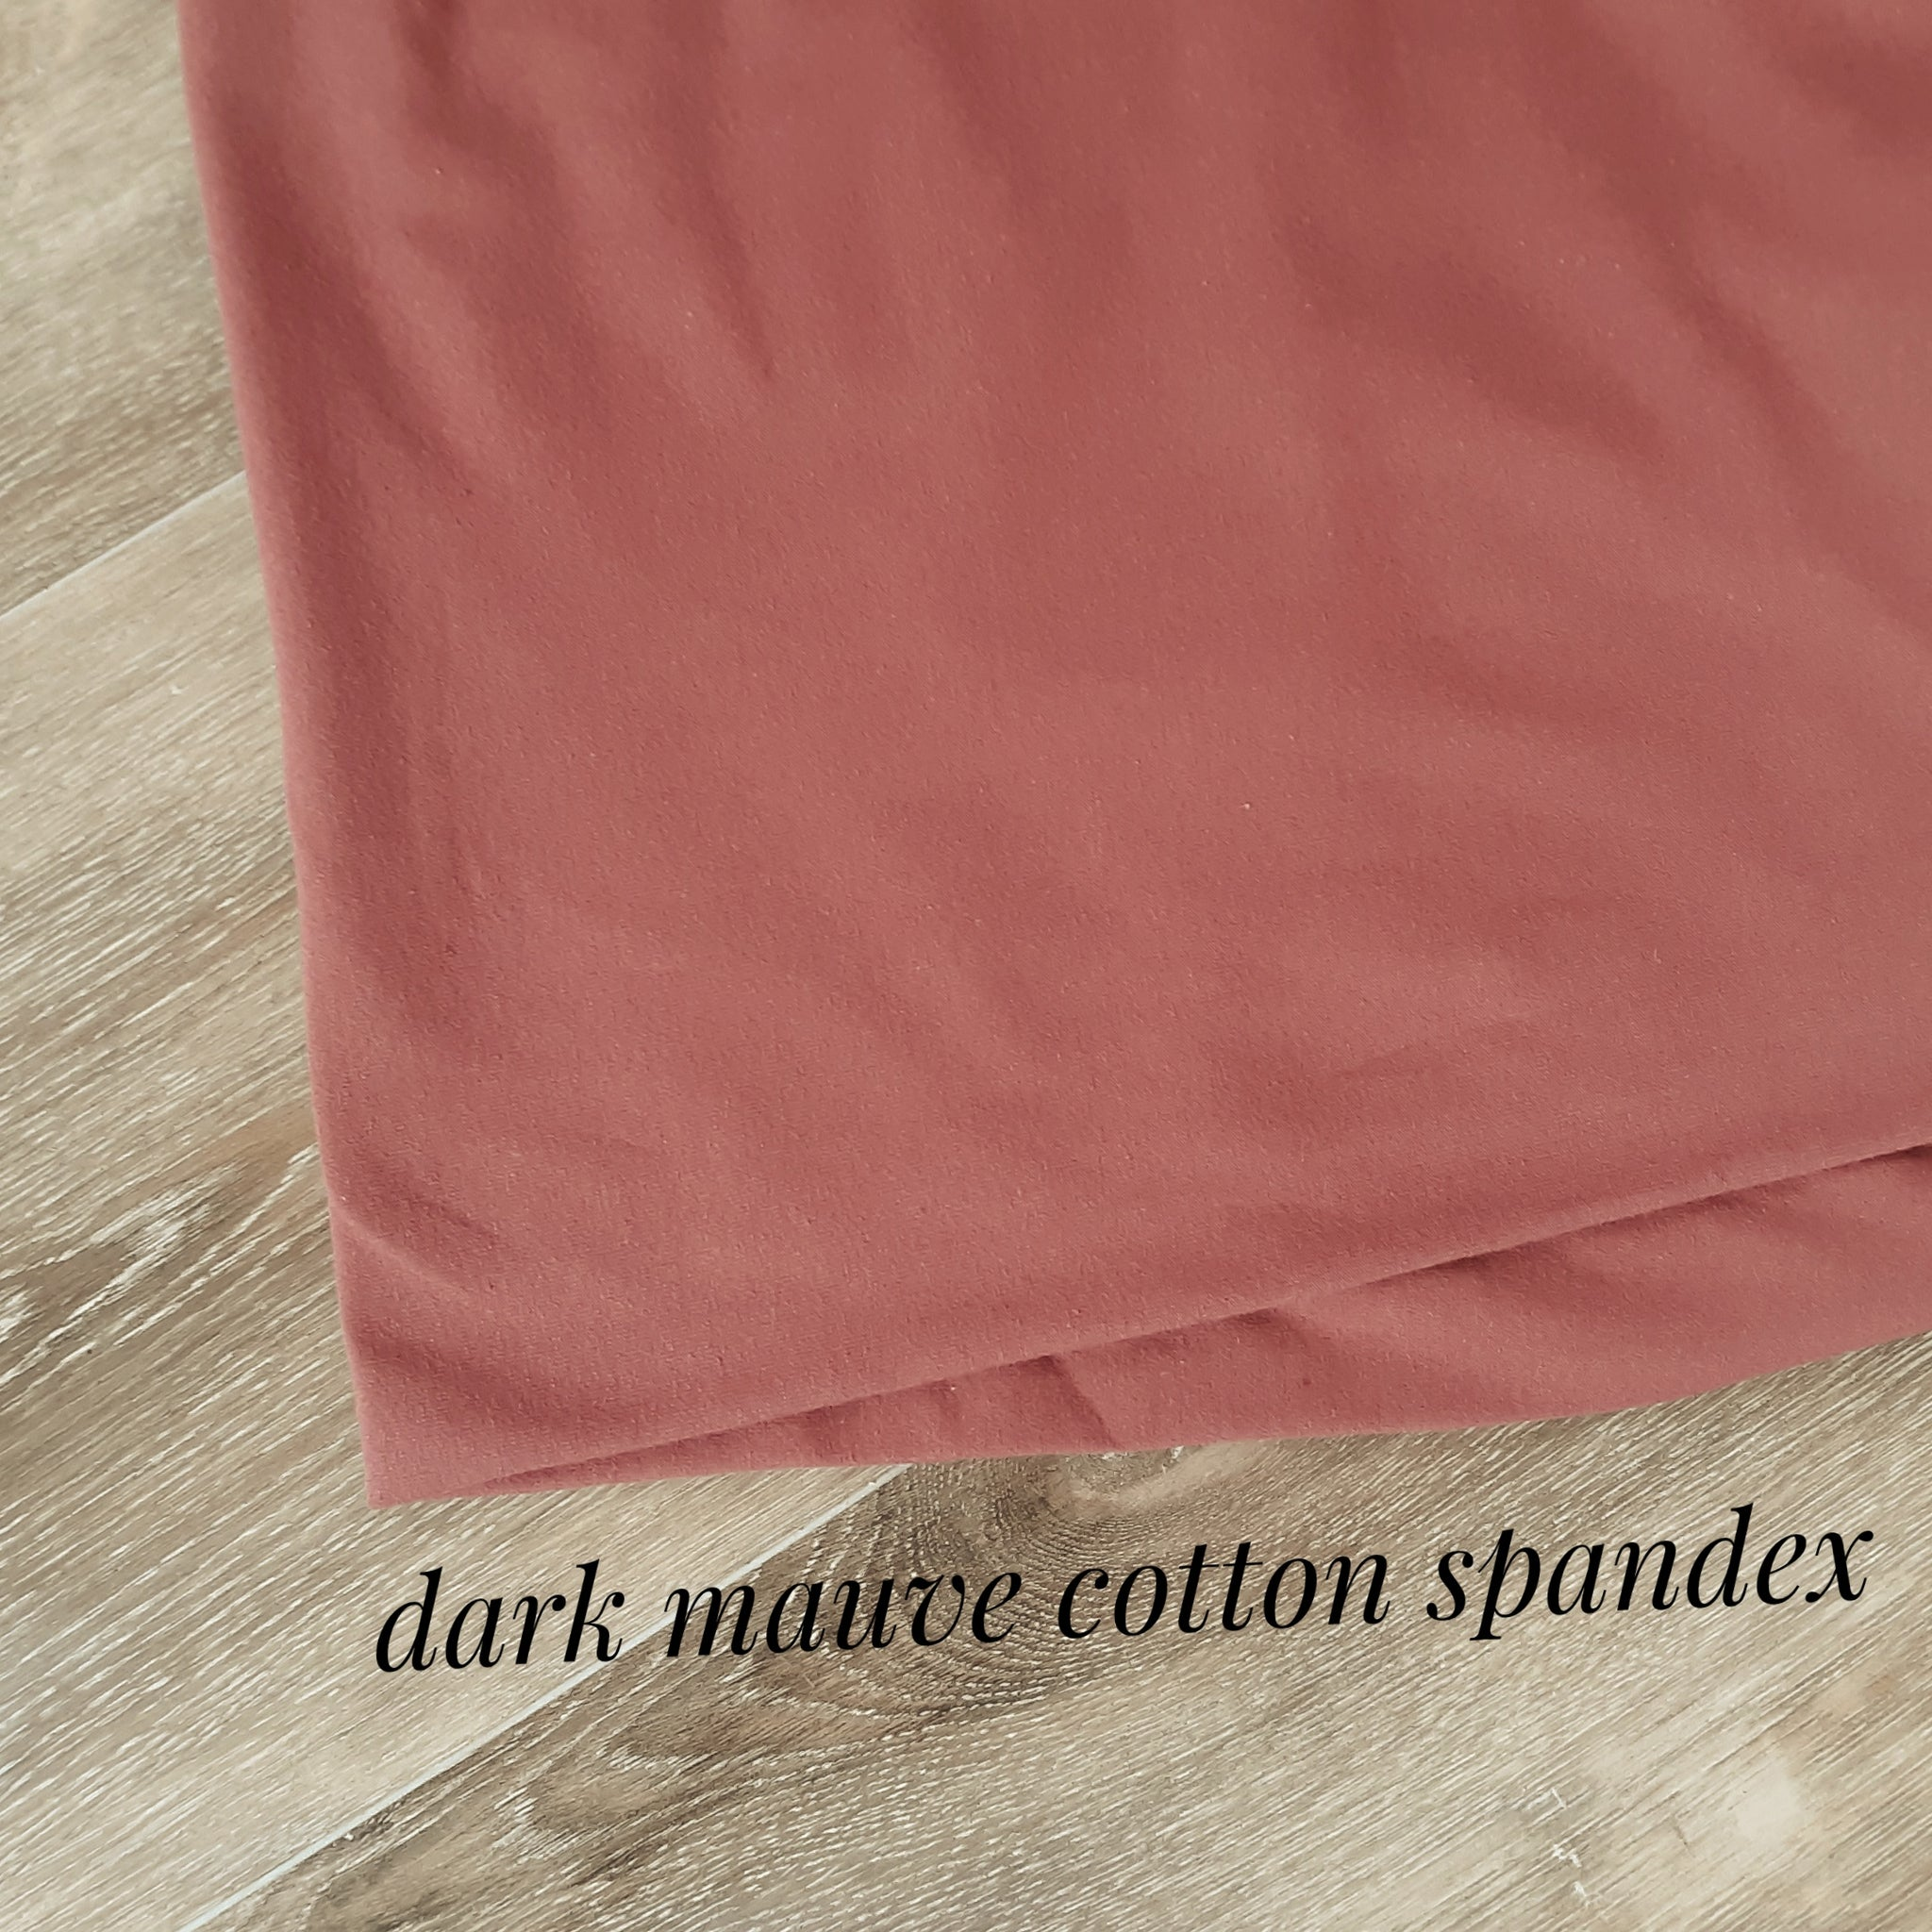 Cotton Spandex Solids|By the Half Yard